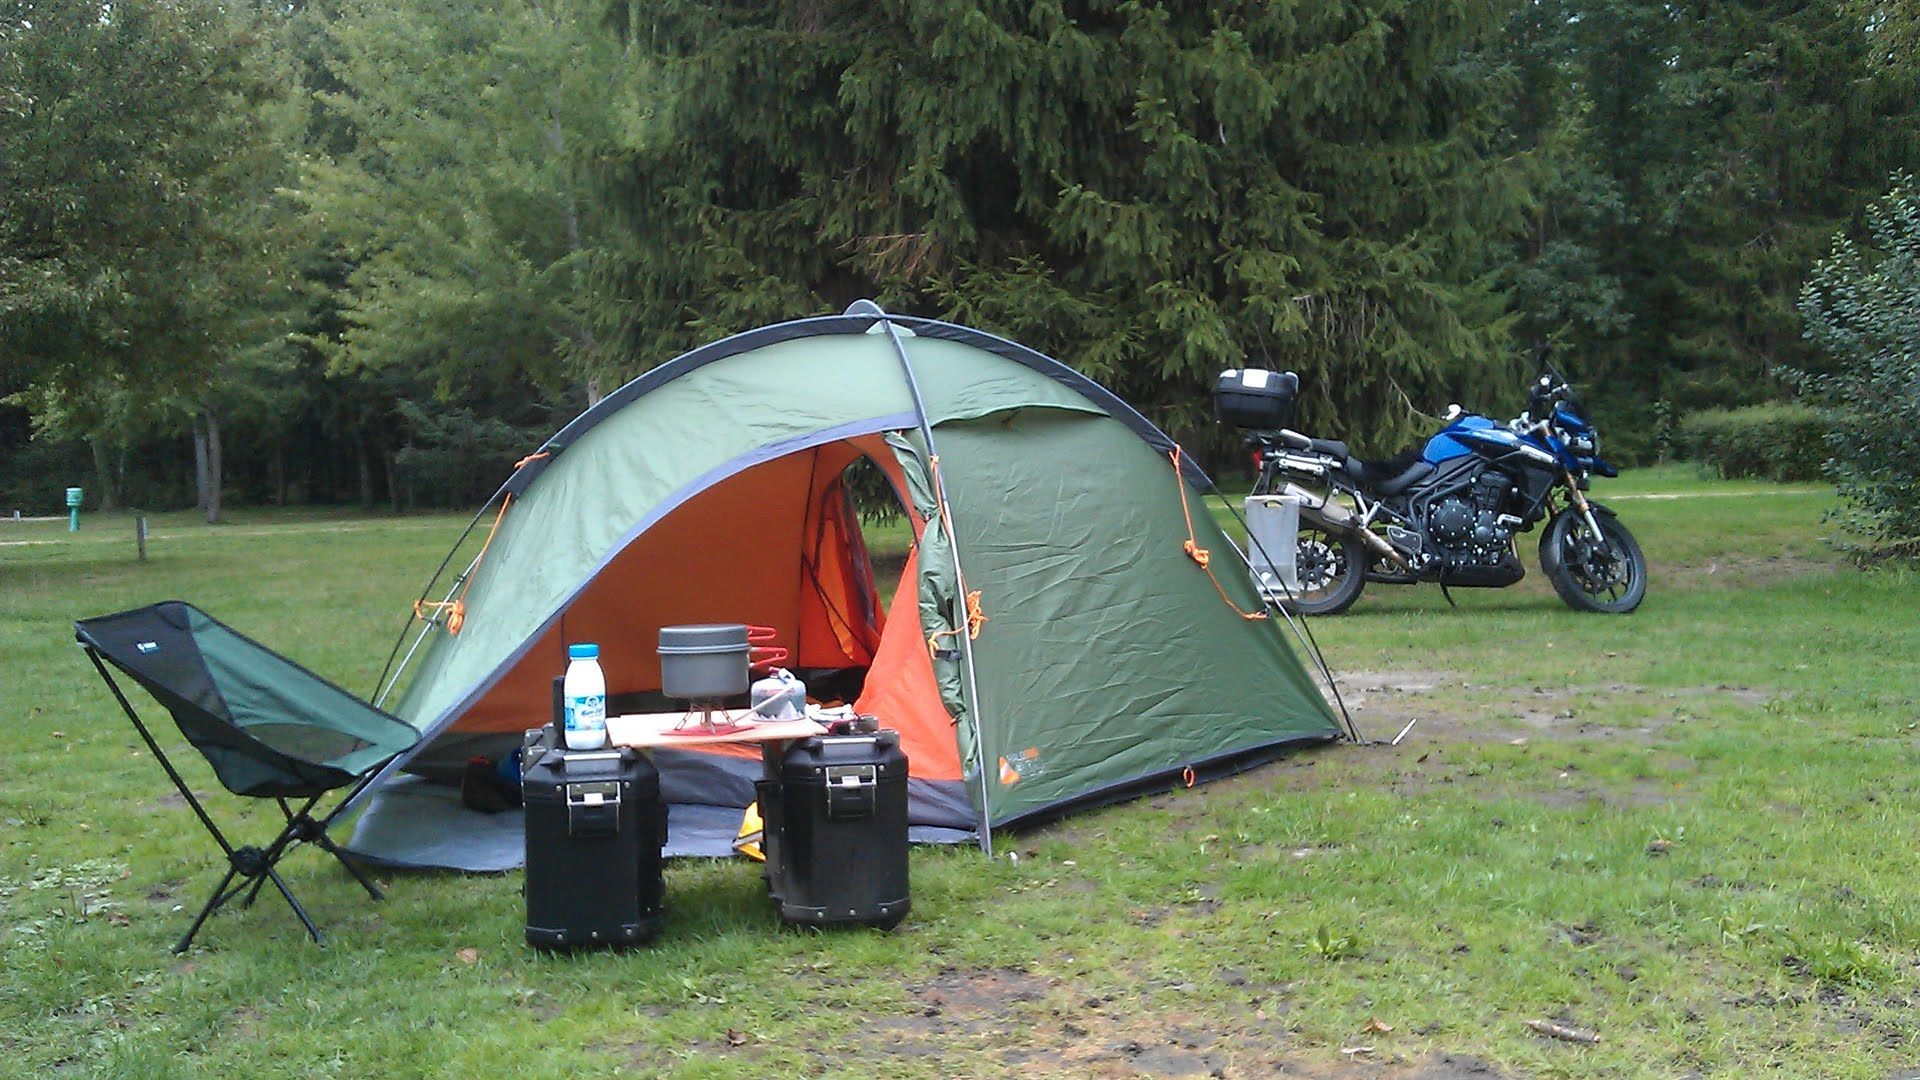 Motorcycle Camping – Go for light weight camping tents